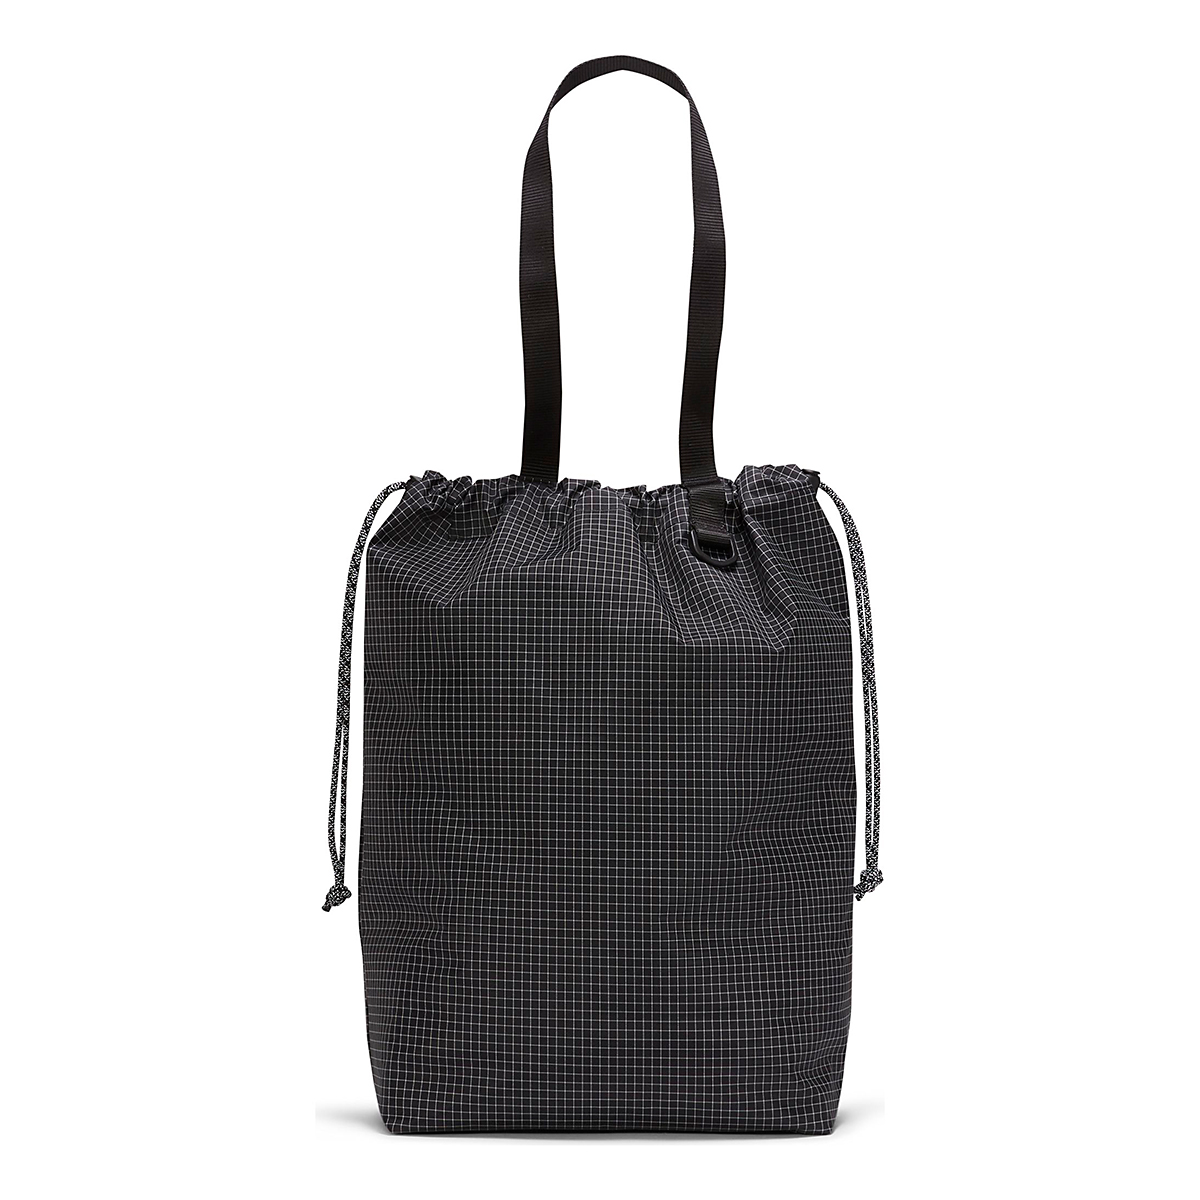 Nike Heritage Tote Bag - Color: Black/White, Black/White, large, image 2